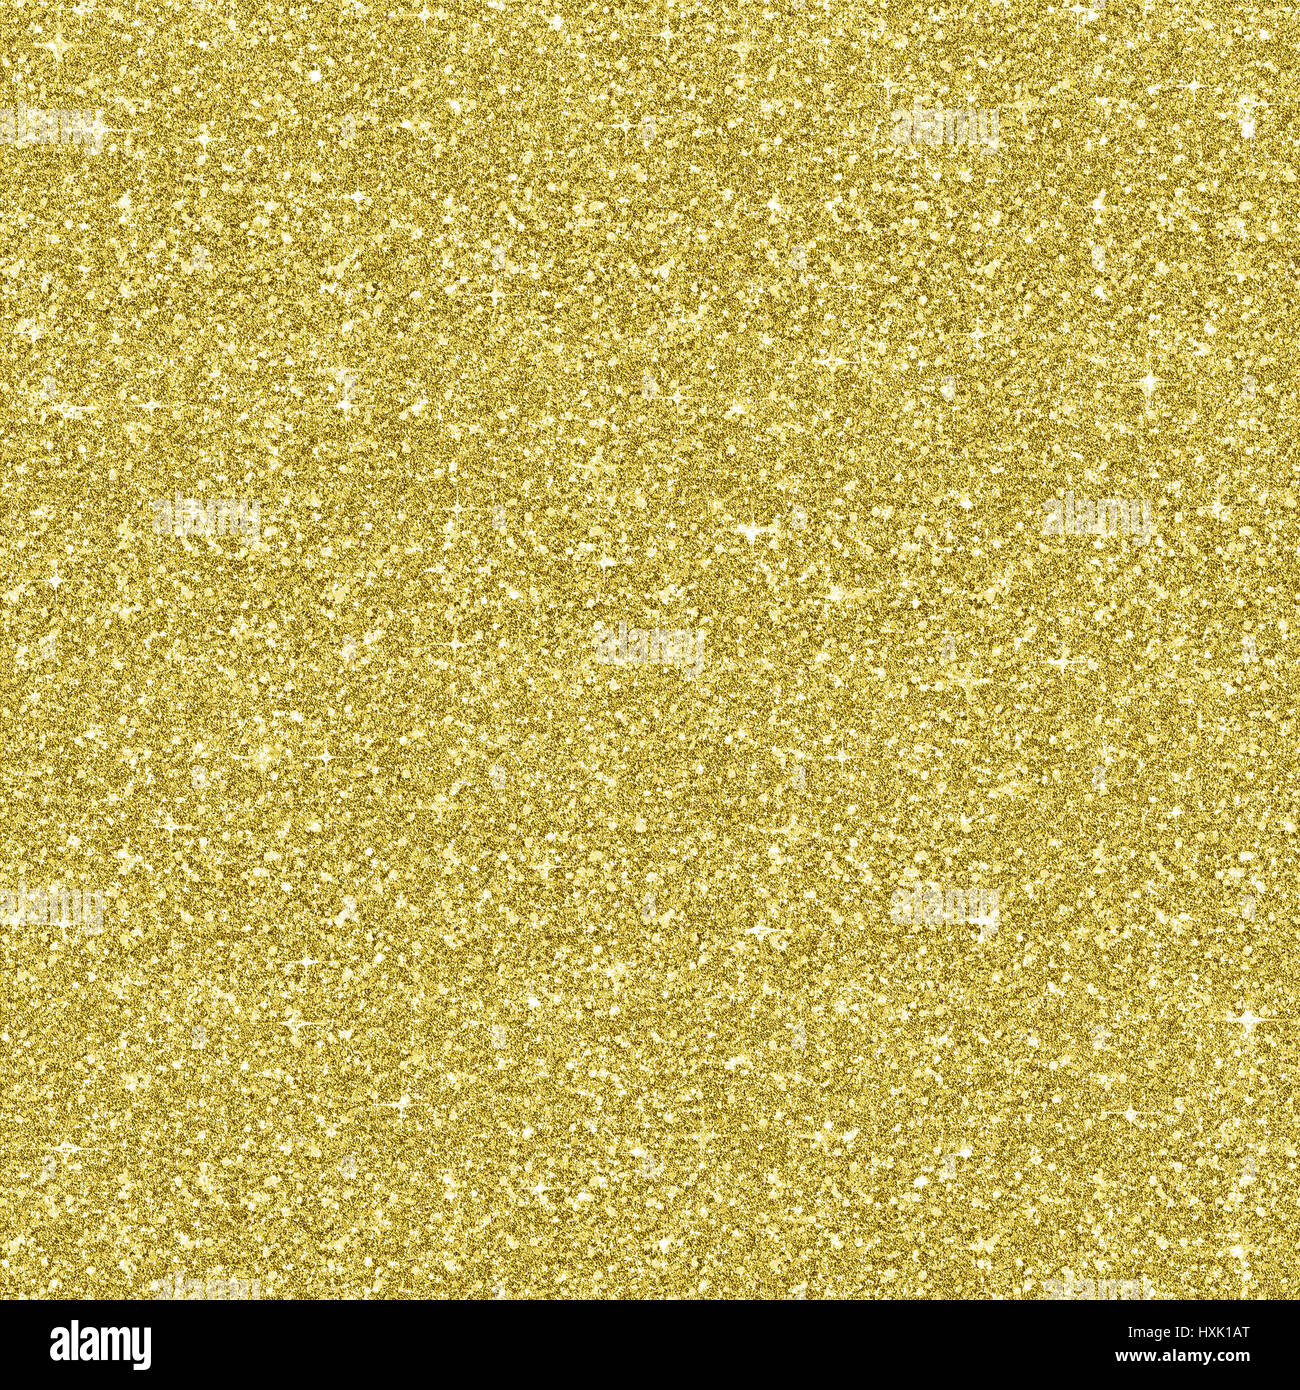 gold rush paper packs for your design - Stock Image